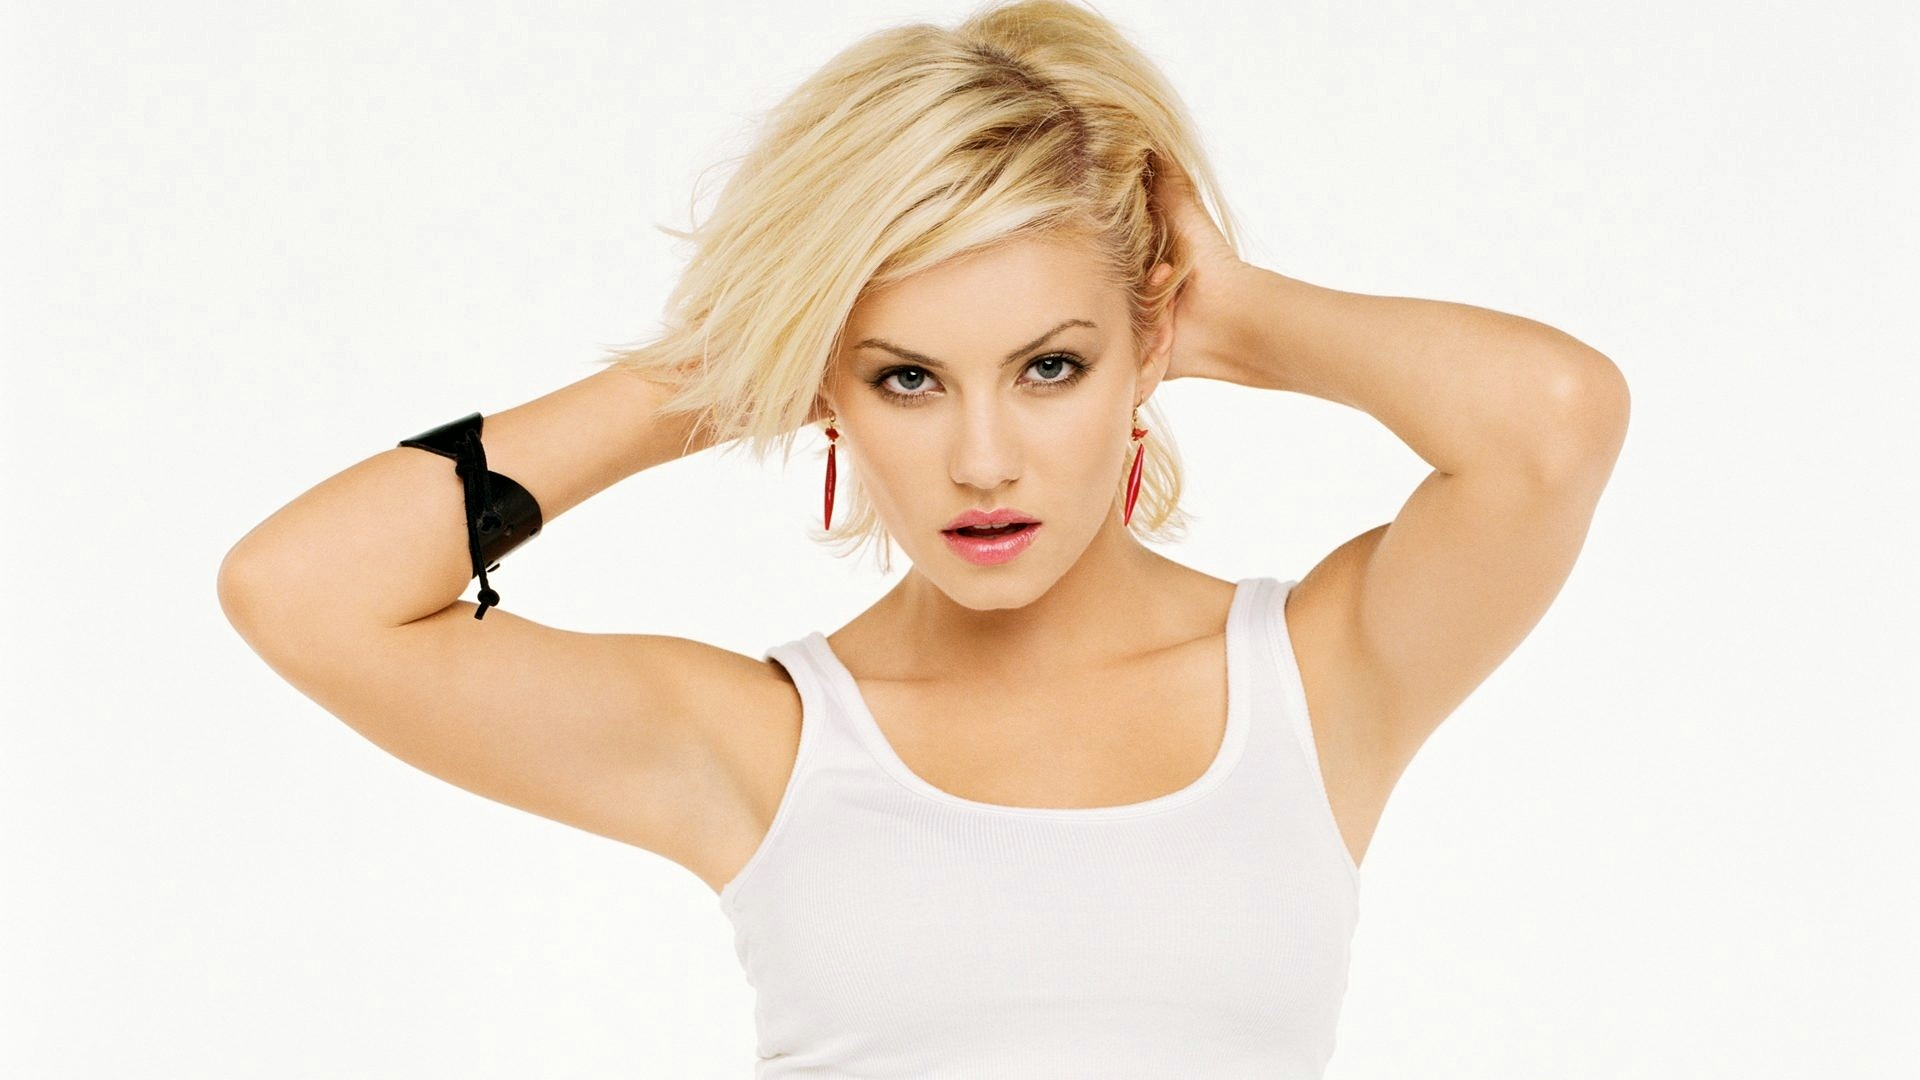 Elisha Cuthbert 4170699 1920x1080 All For Desktop